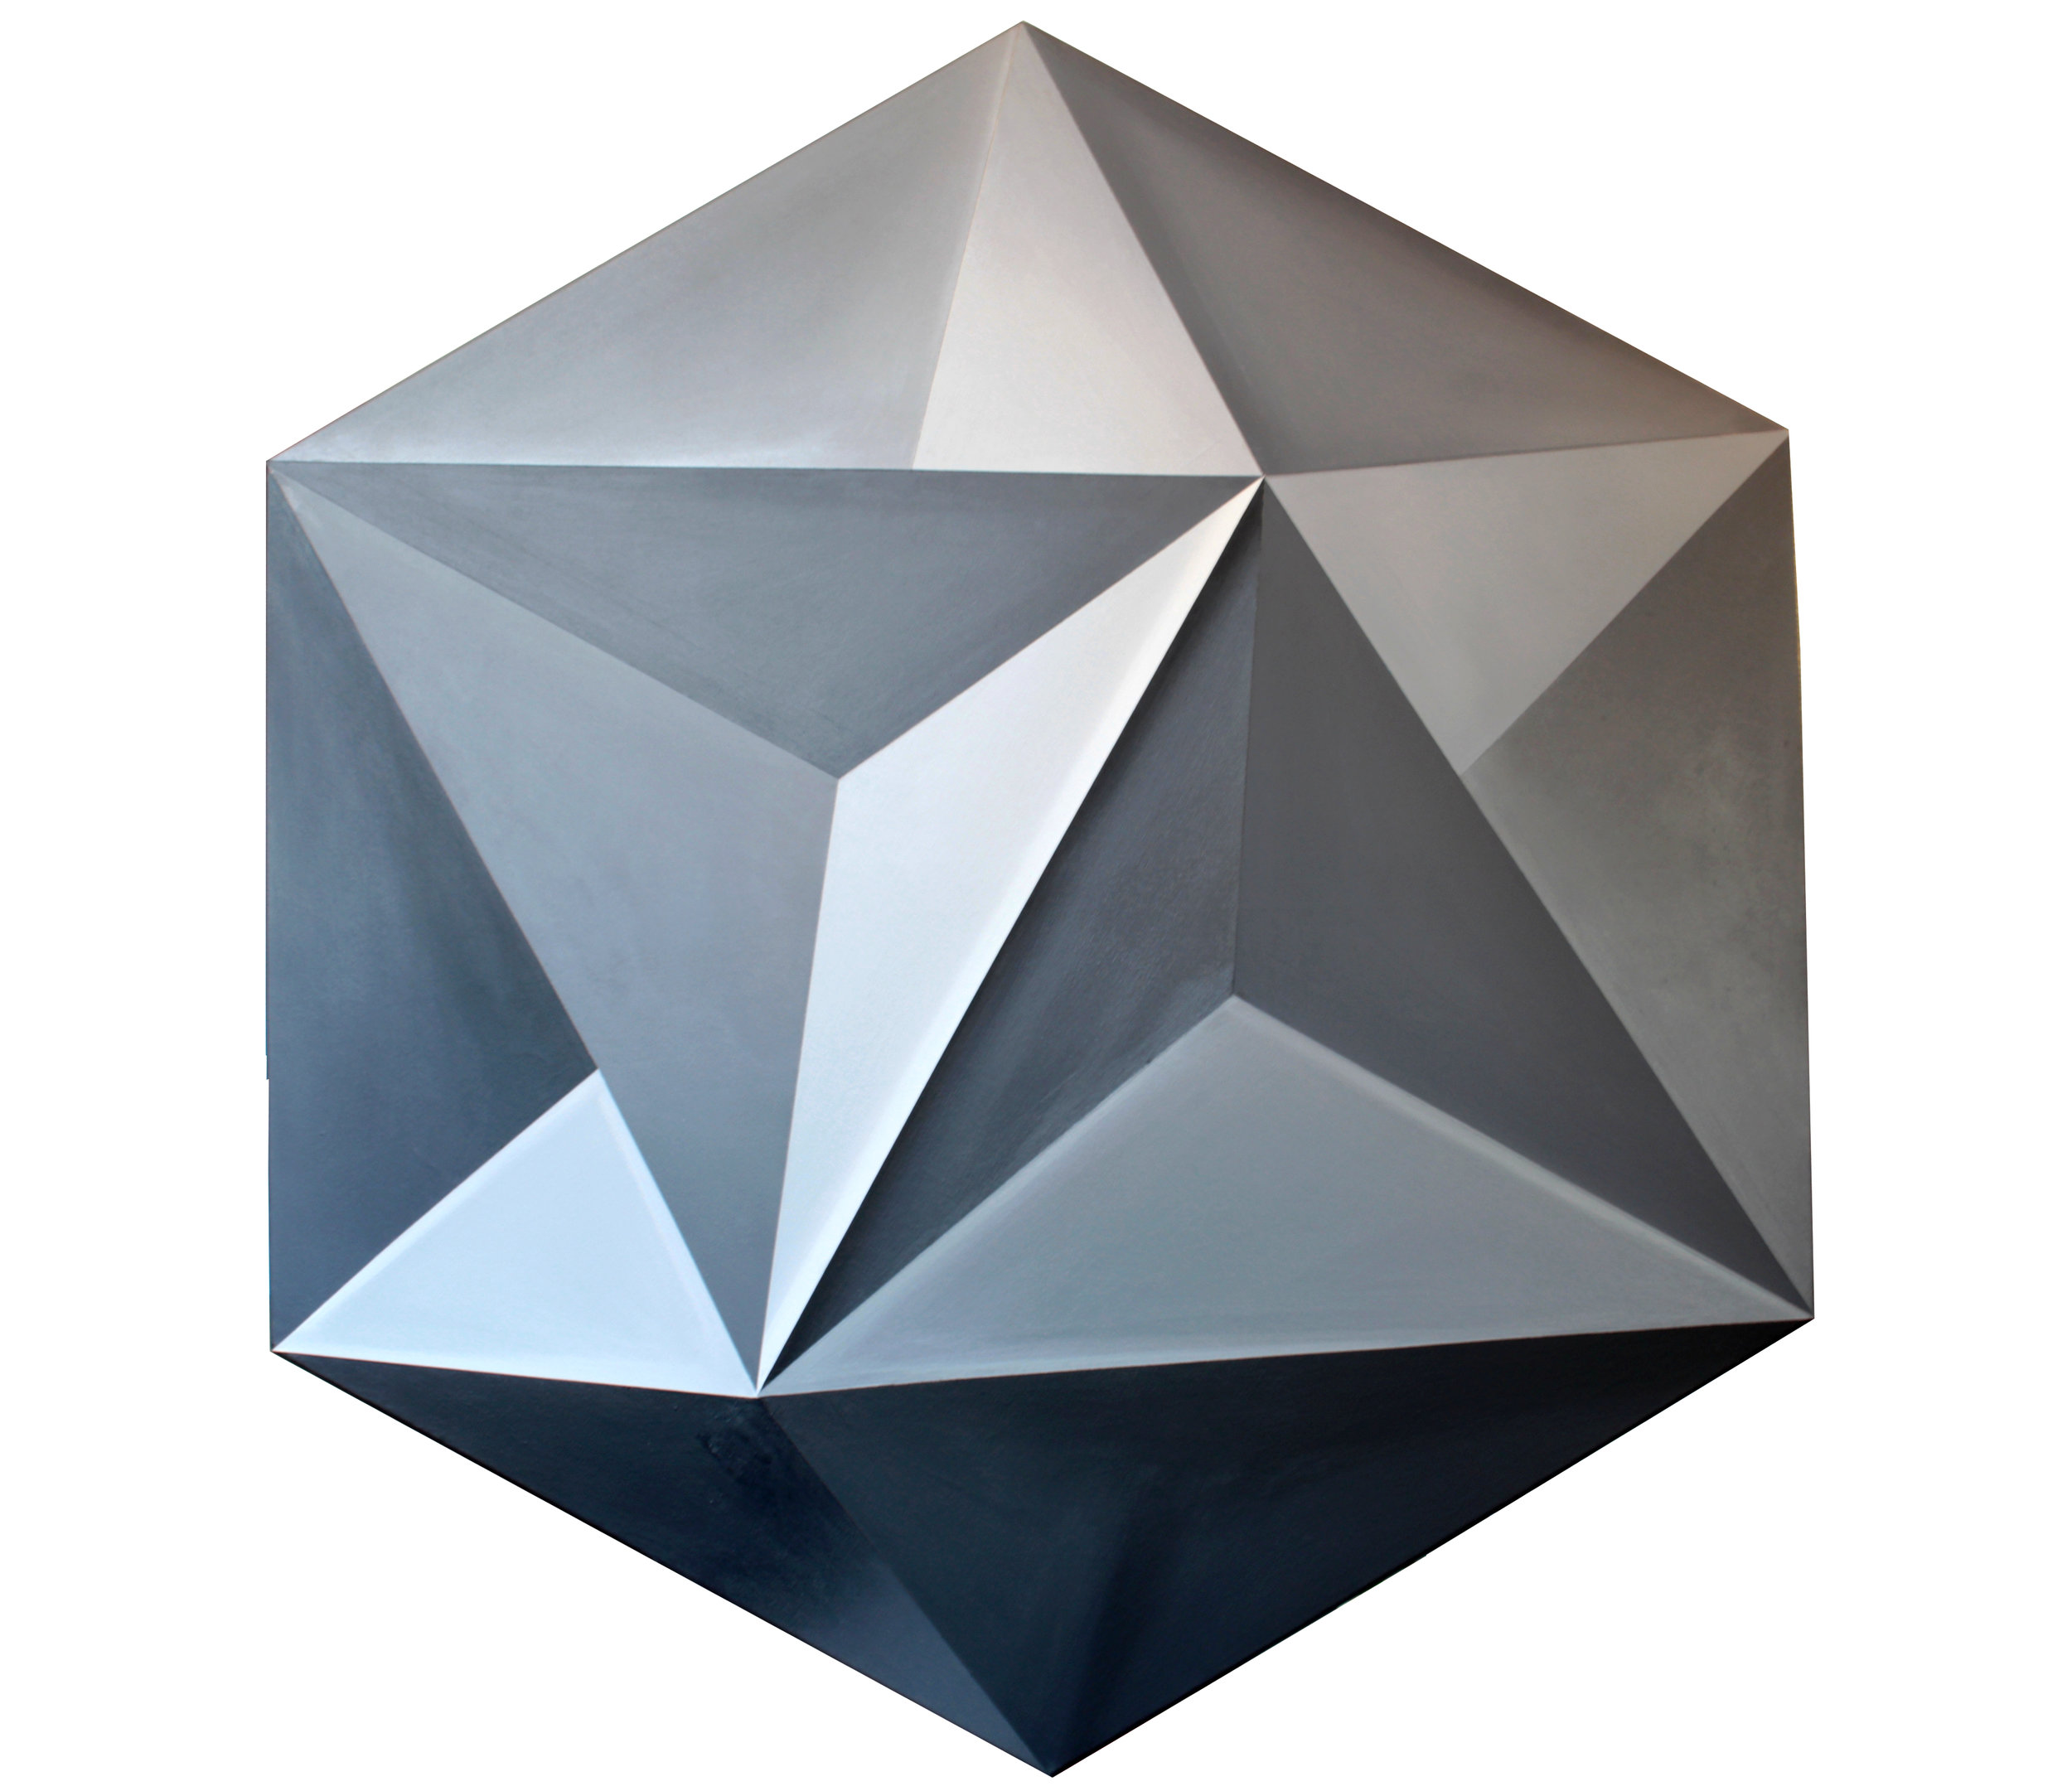 The Great Dodecahedron, 2018